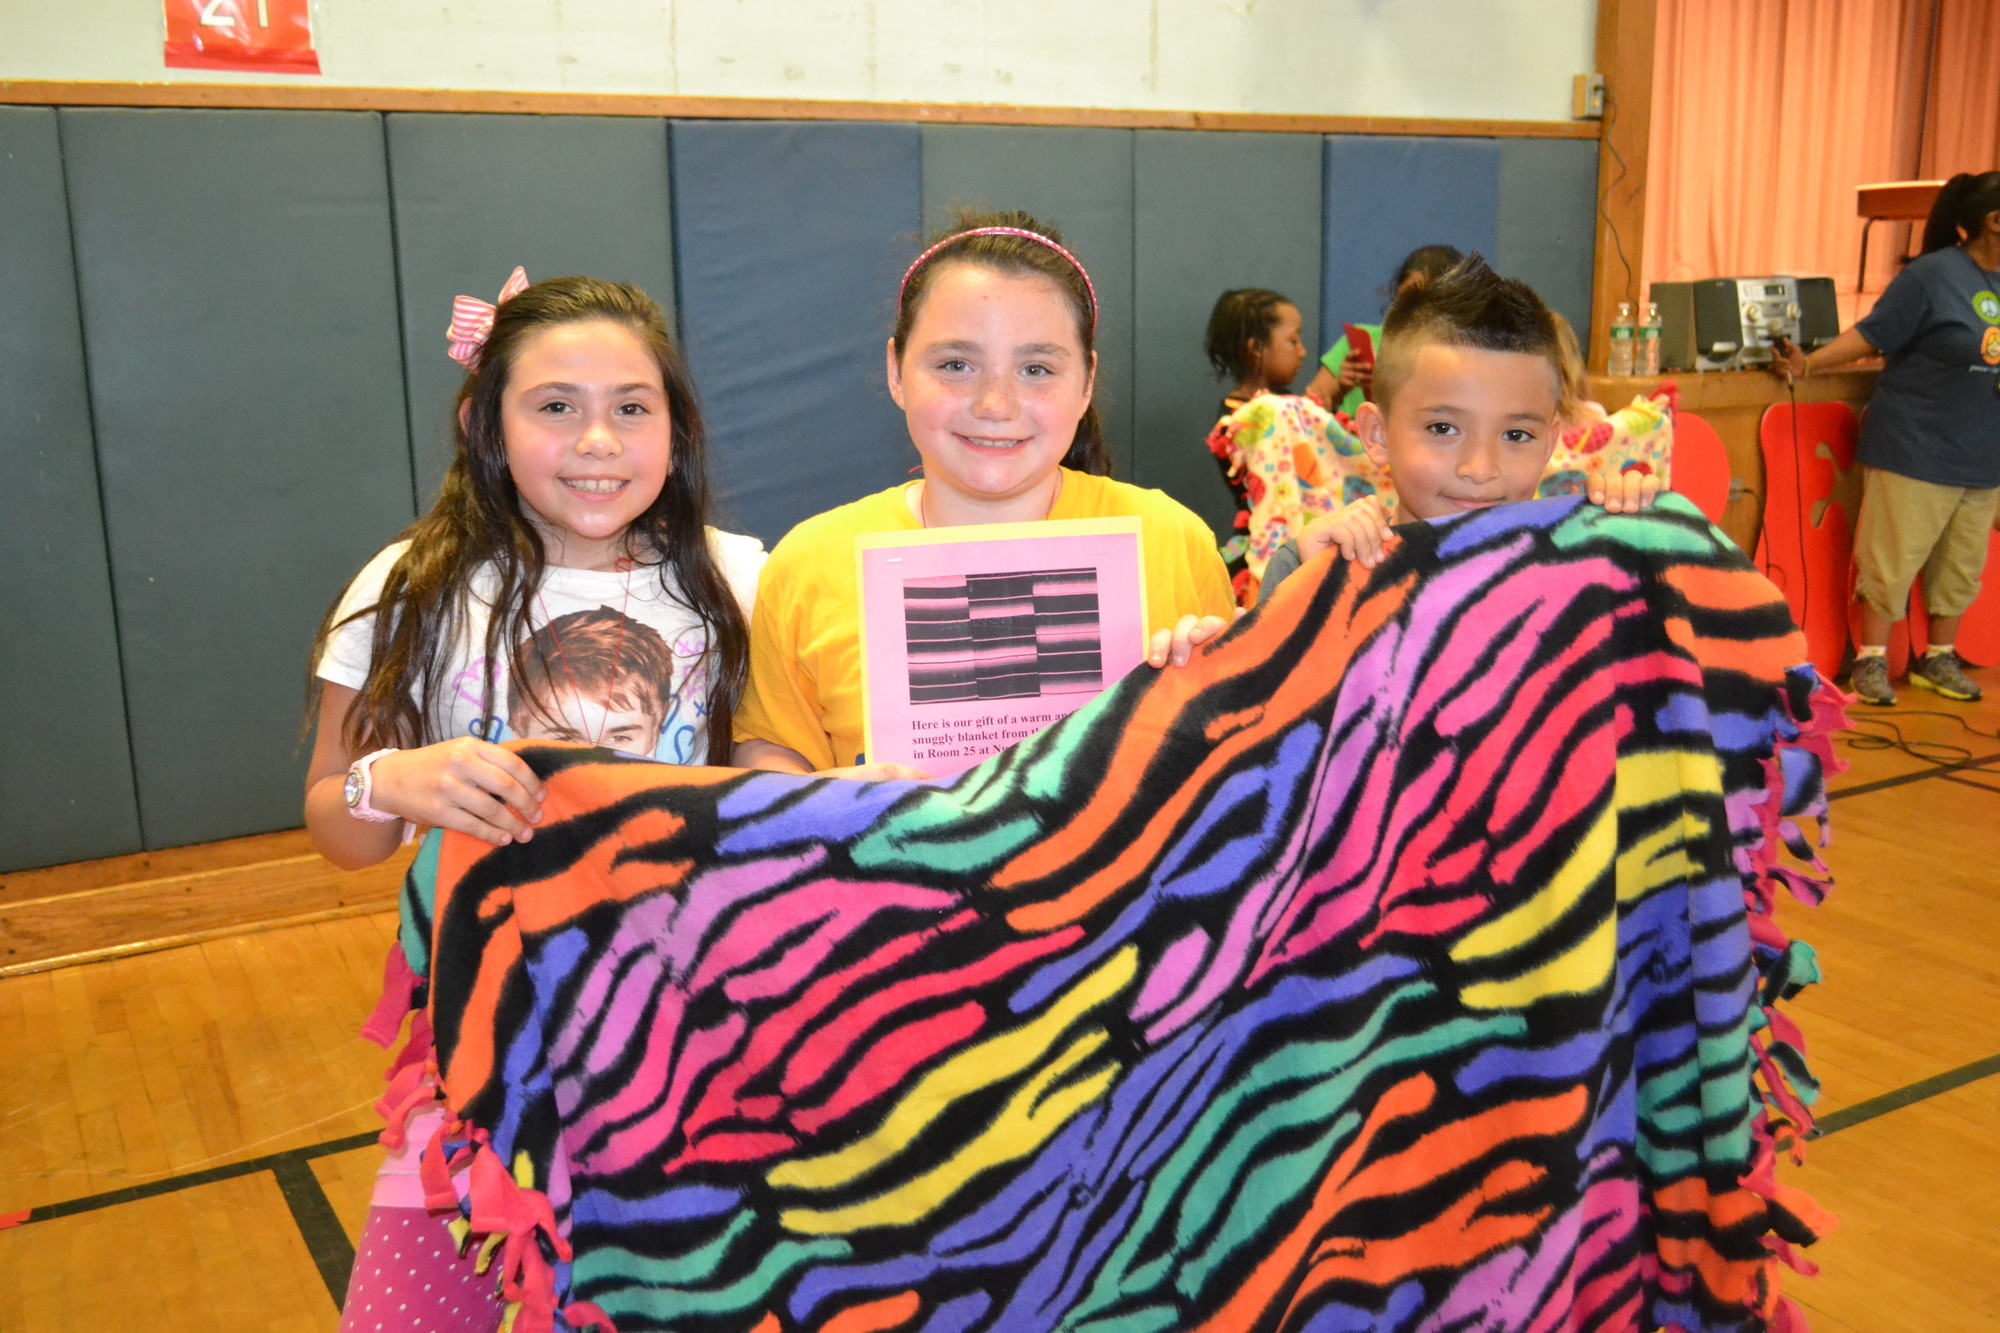 The Number Two School commemorated Peace Day as part of its Social Emotional Learning program. From left Guinevere Hernandez, Samantha Puzio and Johanny Moreno displayed one of the donated blankets.